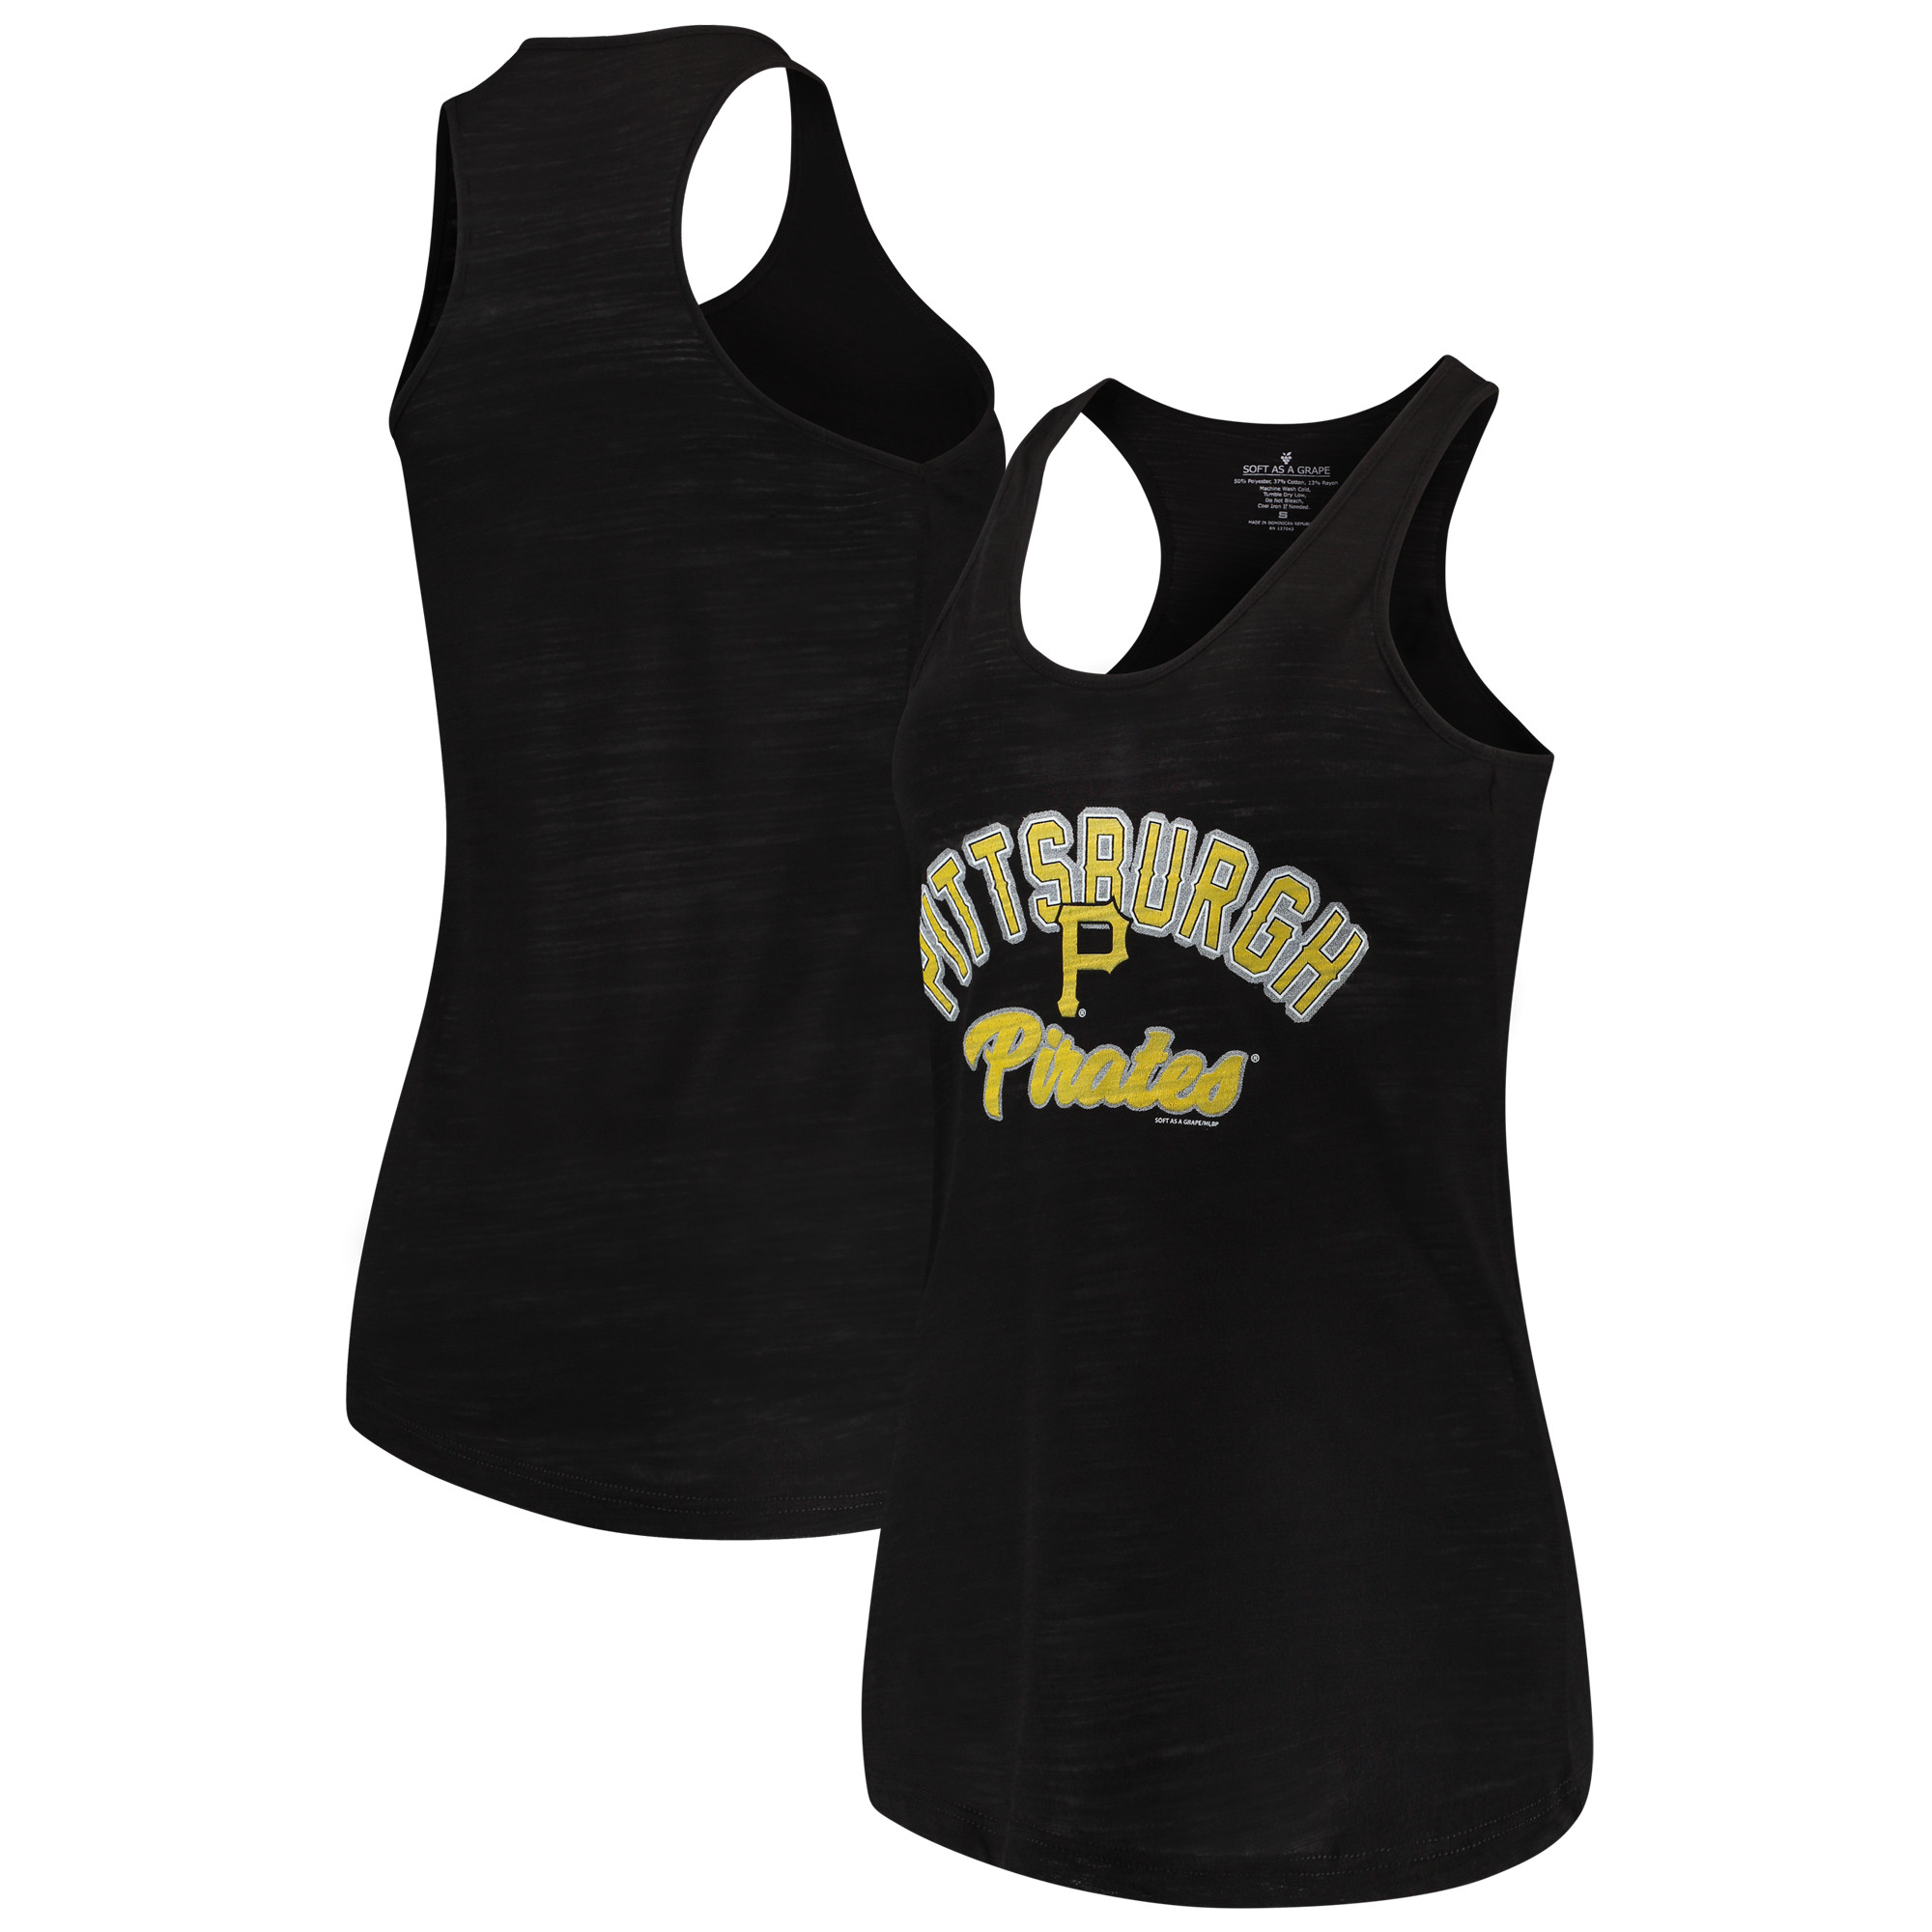 Pittsburgh Pirates Soft as a Grape Women's Multicount Racerback Tank Top - Black